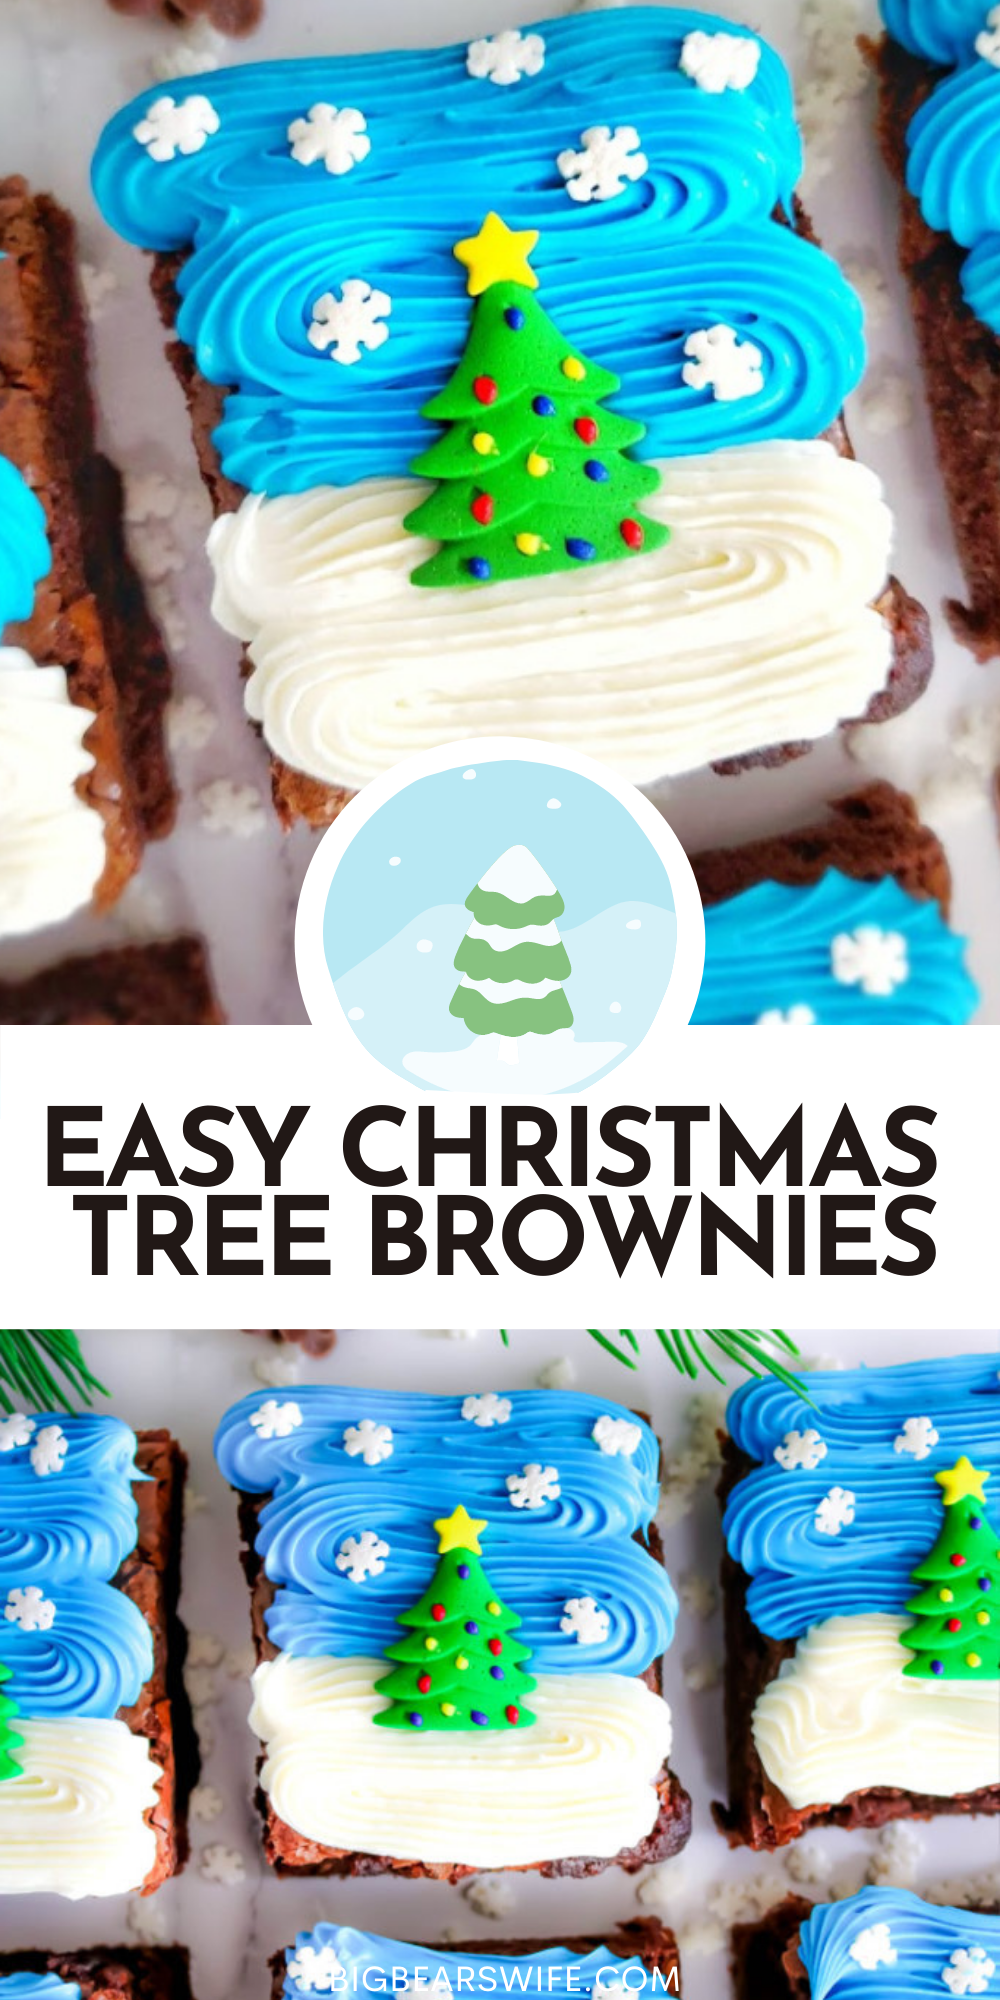 These Easy Christmas Tree Brownies are super festive and simple to make! Use your favorite brownie recipe, my recipe, a boxed mix or brownies from the bakery to create these Christmas treats! via @bigbearswife